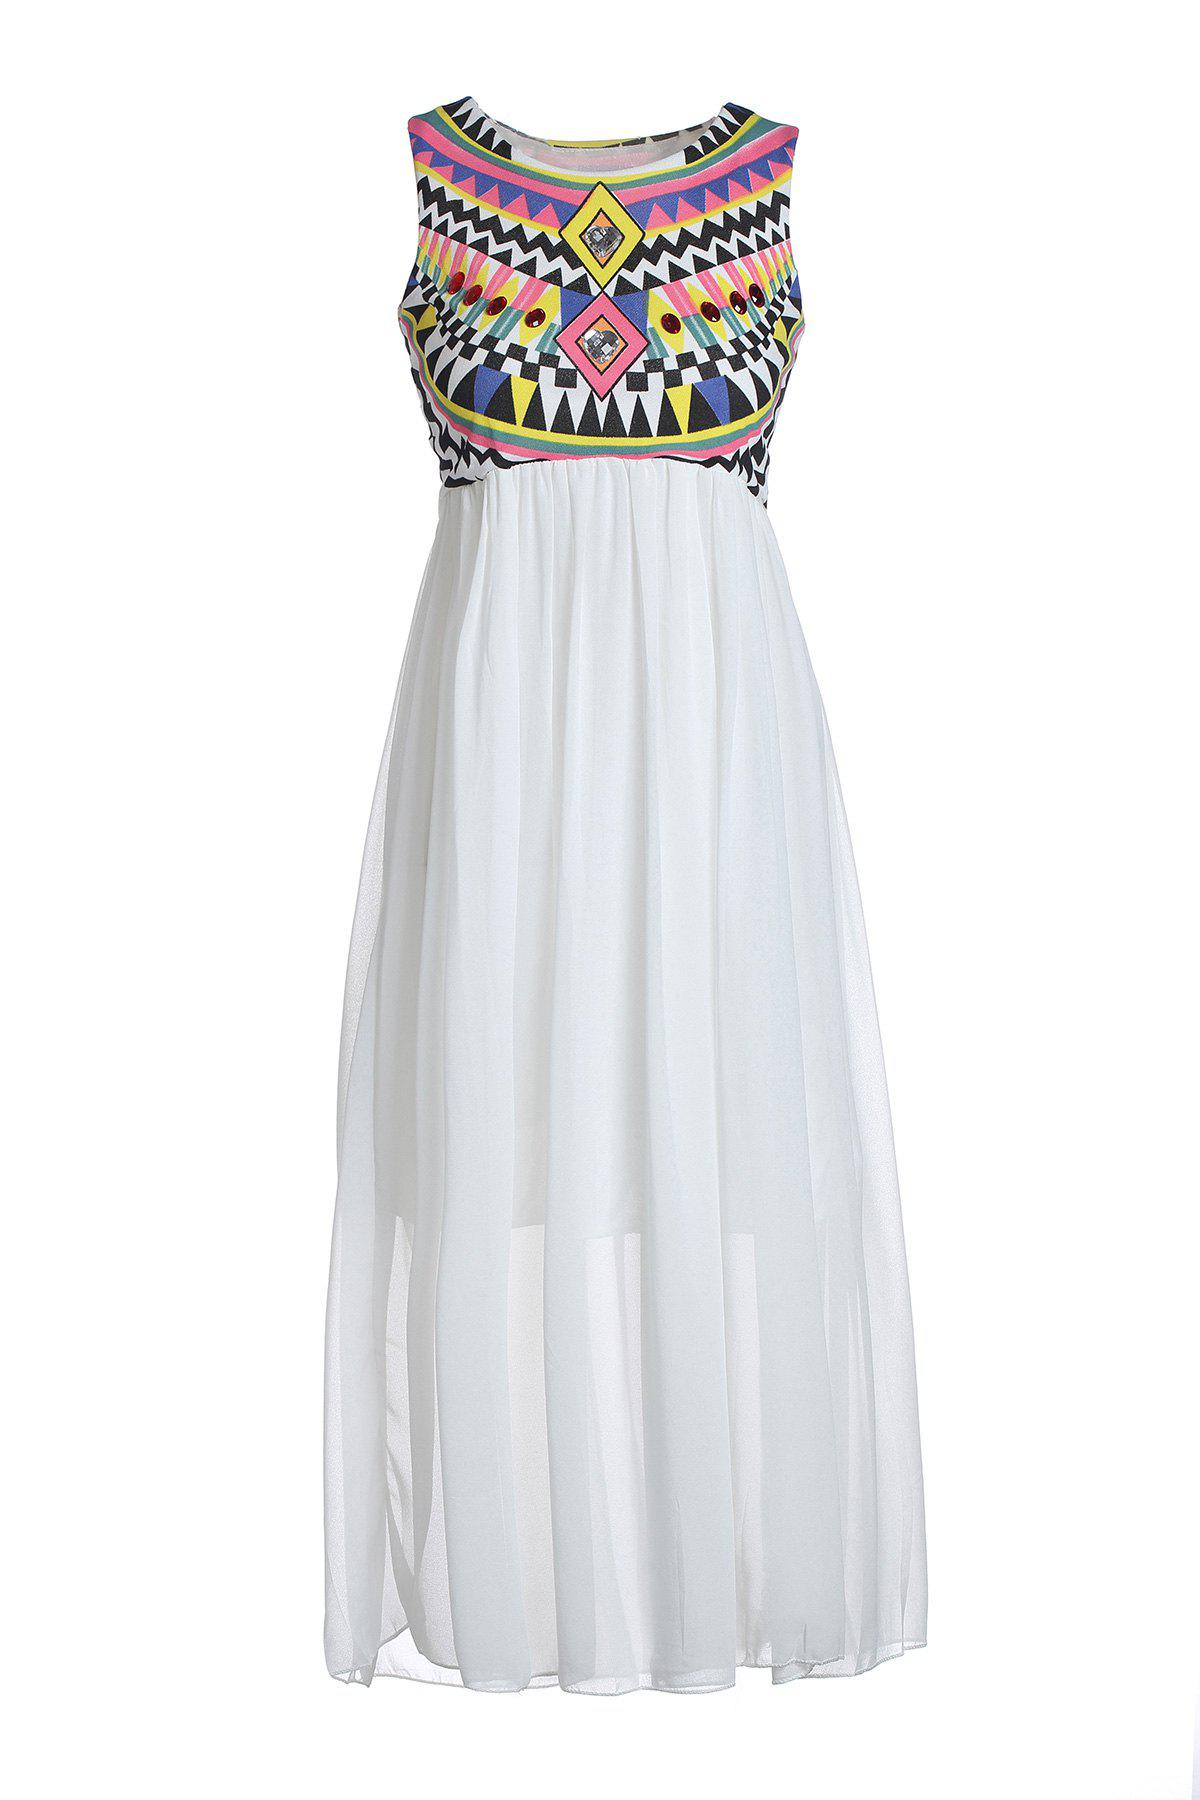 Special Print Bohemian Style Chiffon Ruffled Scoop Neck Sleeveless Women's Maxi Dress